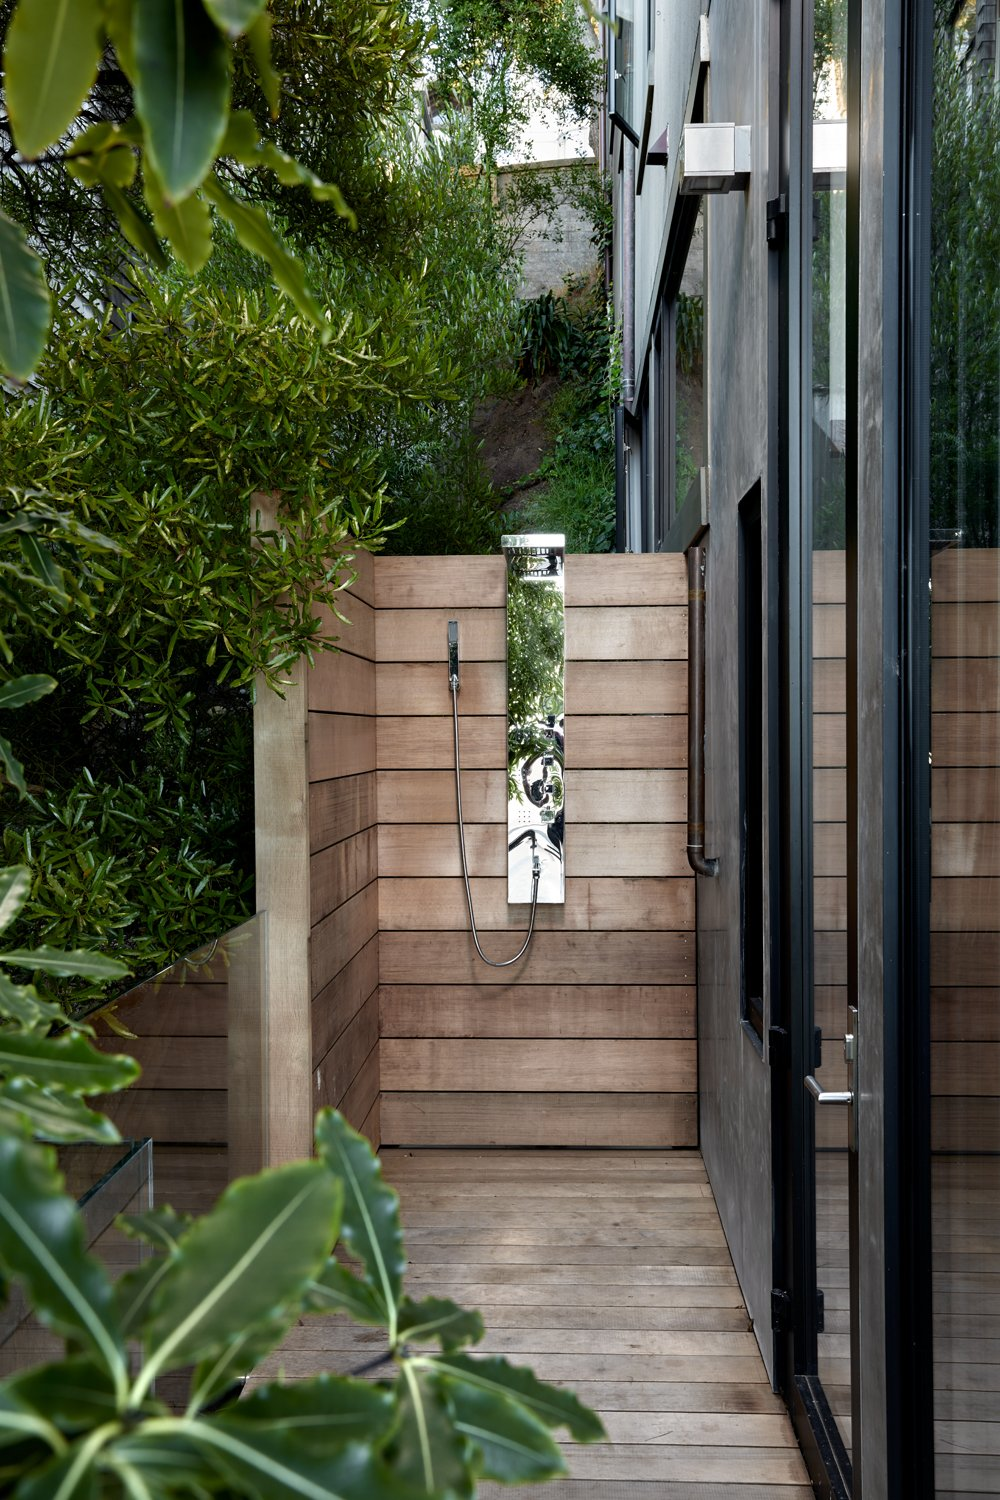 Outdoor, Small, Shower, Side Yard, Trees, Shrubs, Wood, Decking, Horizontal, Wood, and Landscape An outdoor shower is concealed in the side yard and features a weathered  cedar slat enclosure.  Outdoor Trees Shower Shrubs Landscape Photos from Twin Peaks Escape Pad